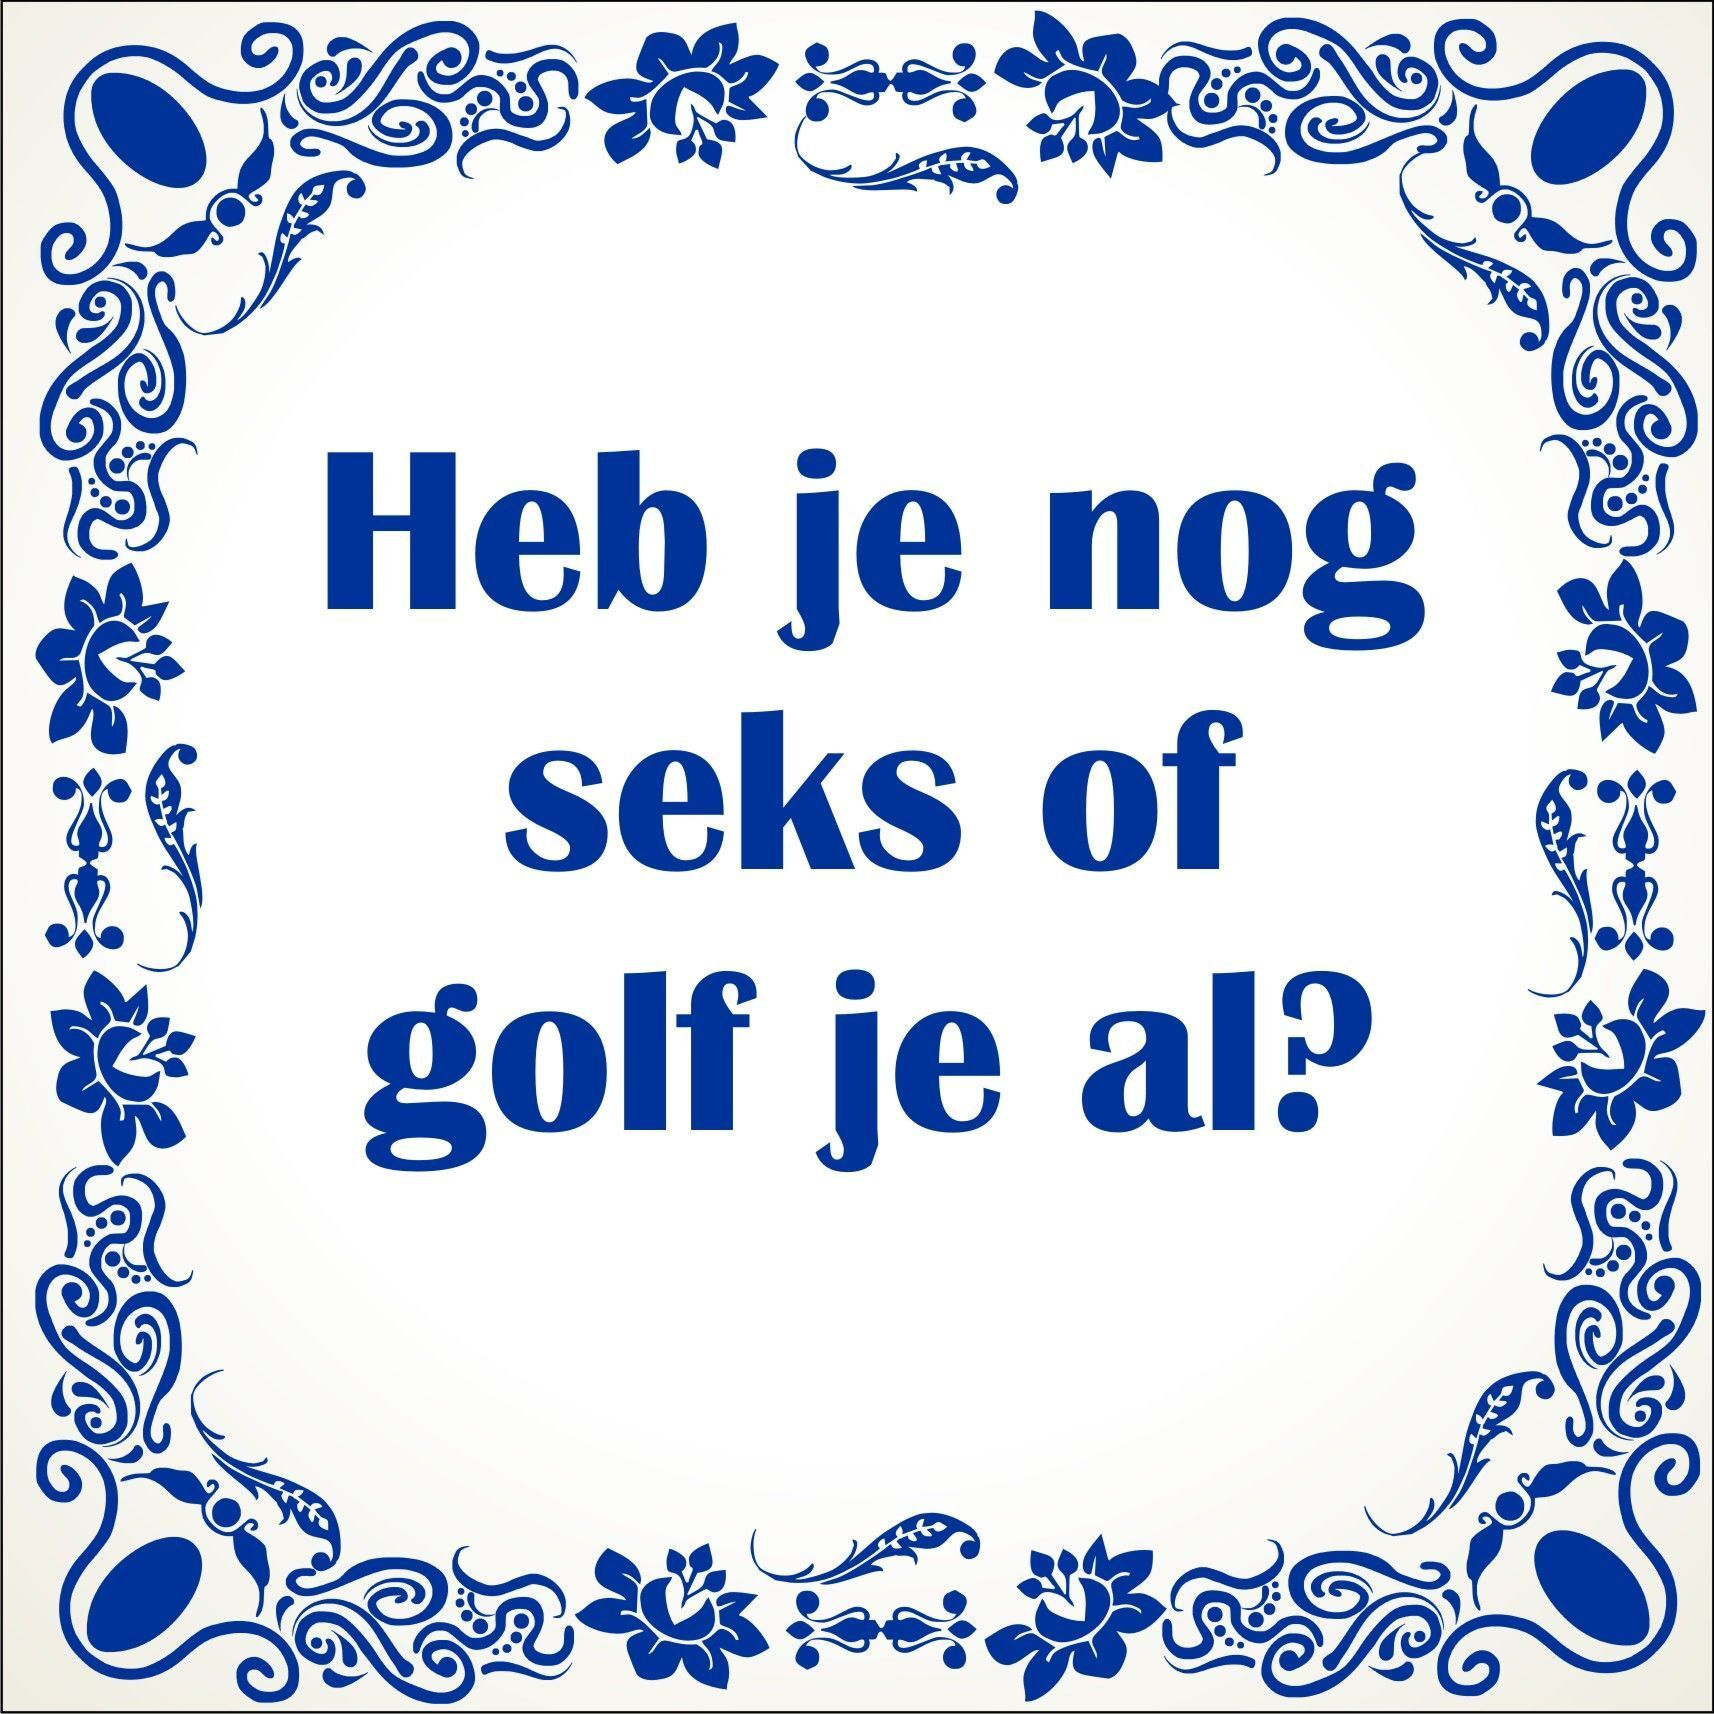 spreuken over golf Spreukentegel heb je nog seks of golf je al spreuken over golf